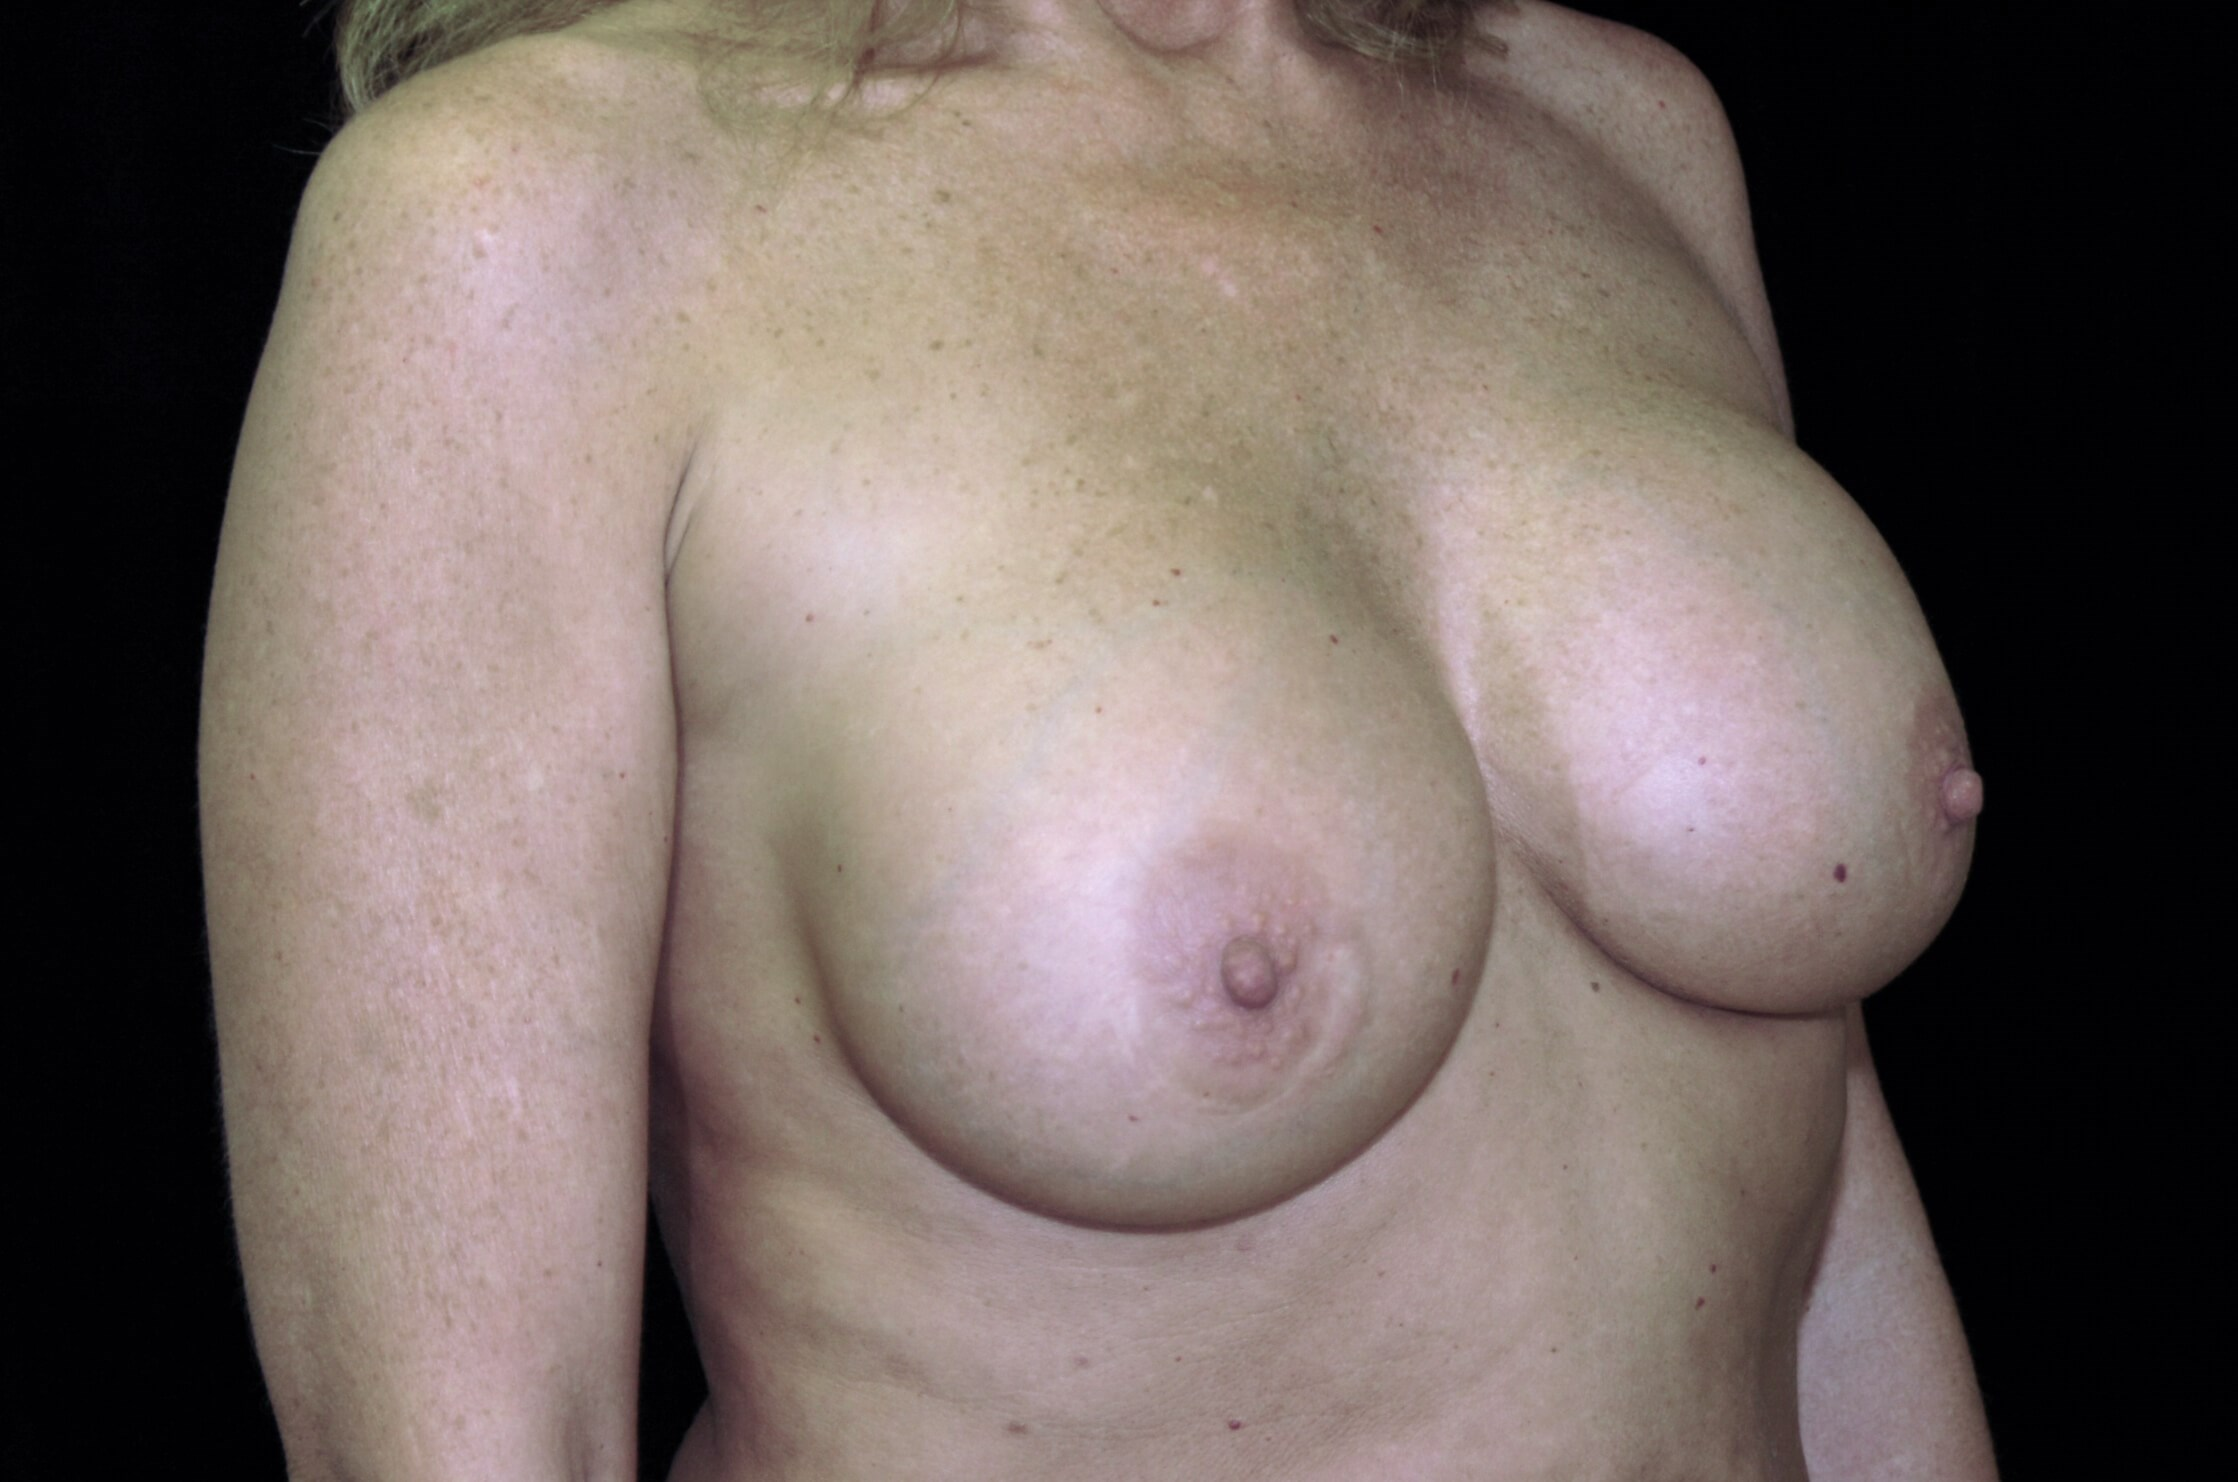 PLANO, TEXAS WOMAN HAS BREAST REVISION SURGERY